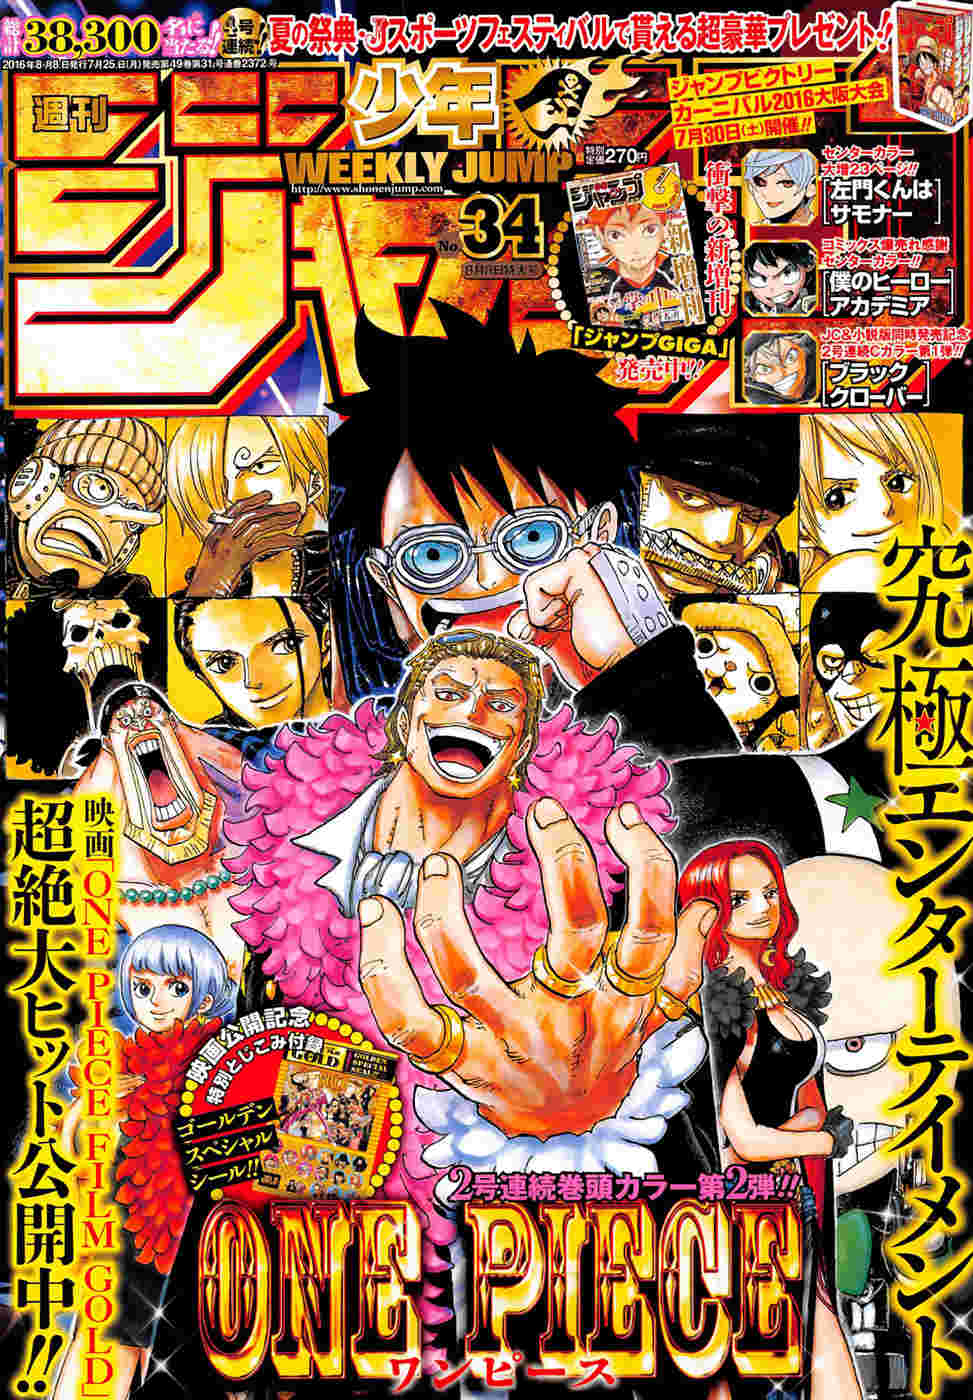 One Piece Chapter 833: Vinsmoke Judge 0111